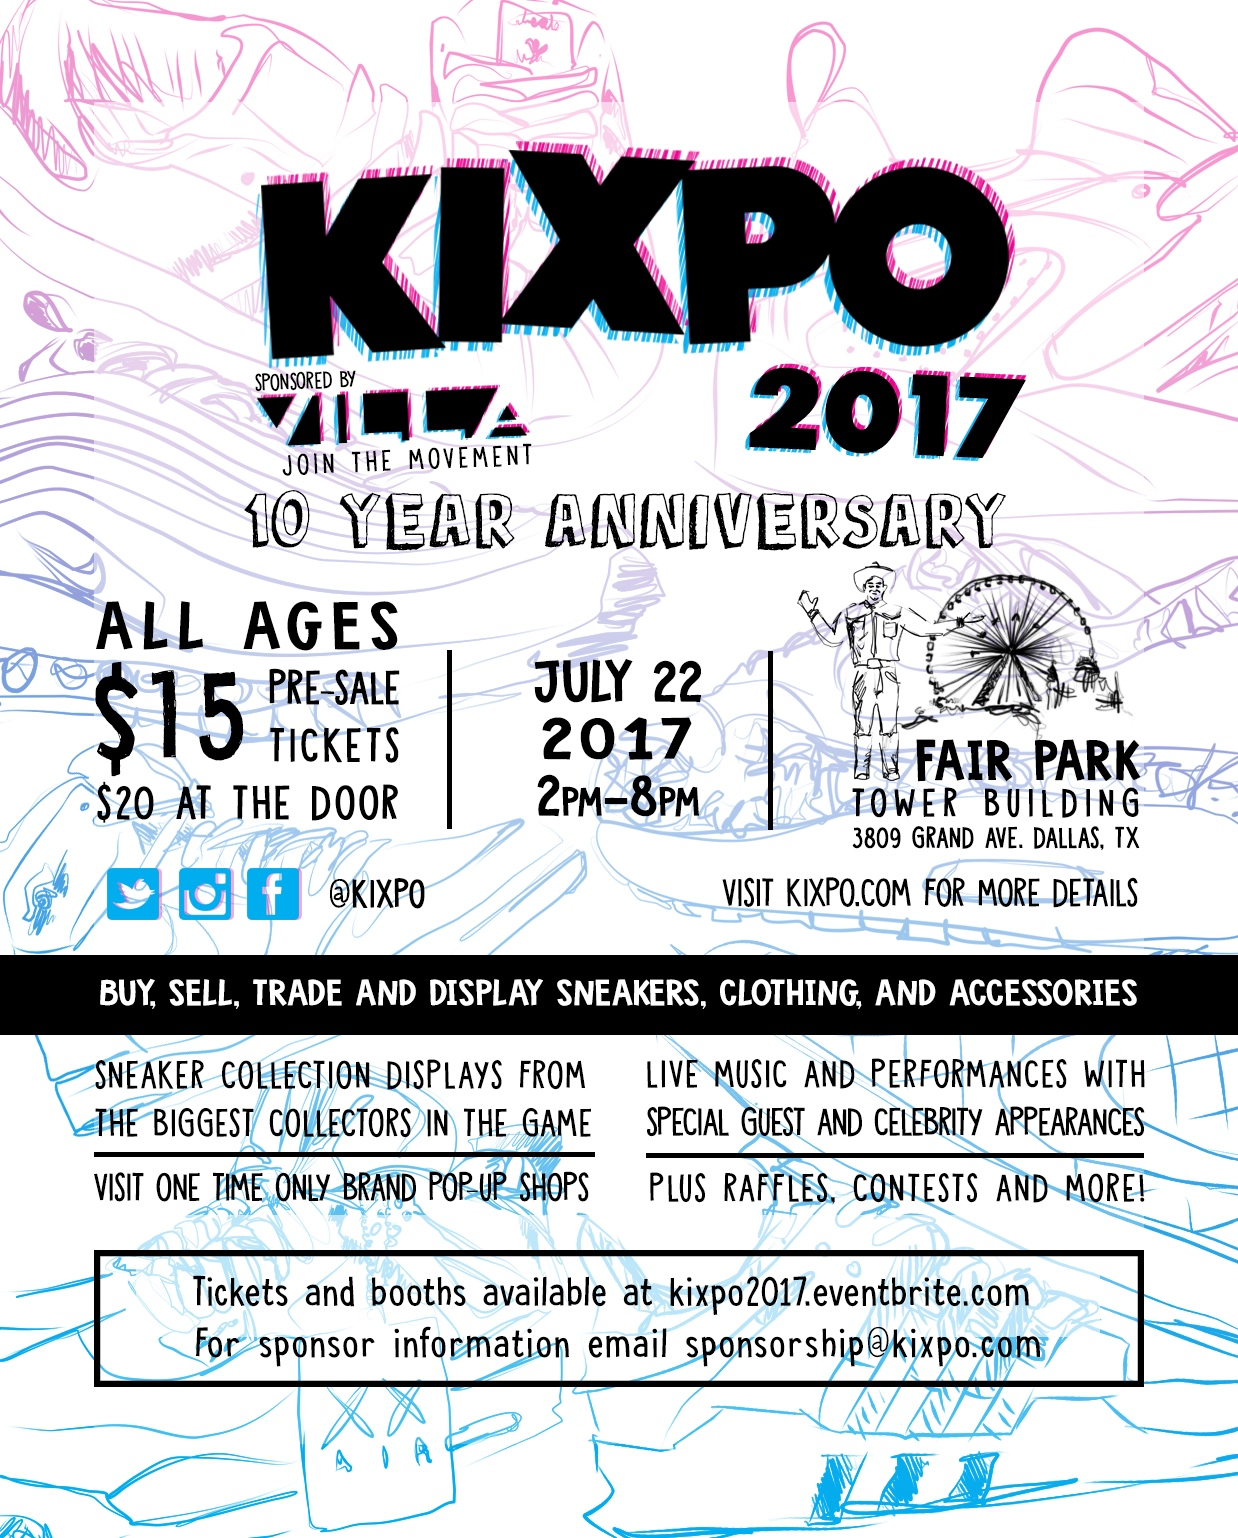 Kixpo 2017 Presented by Villa Flyer